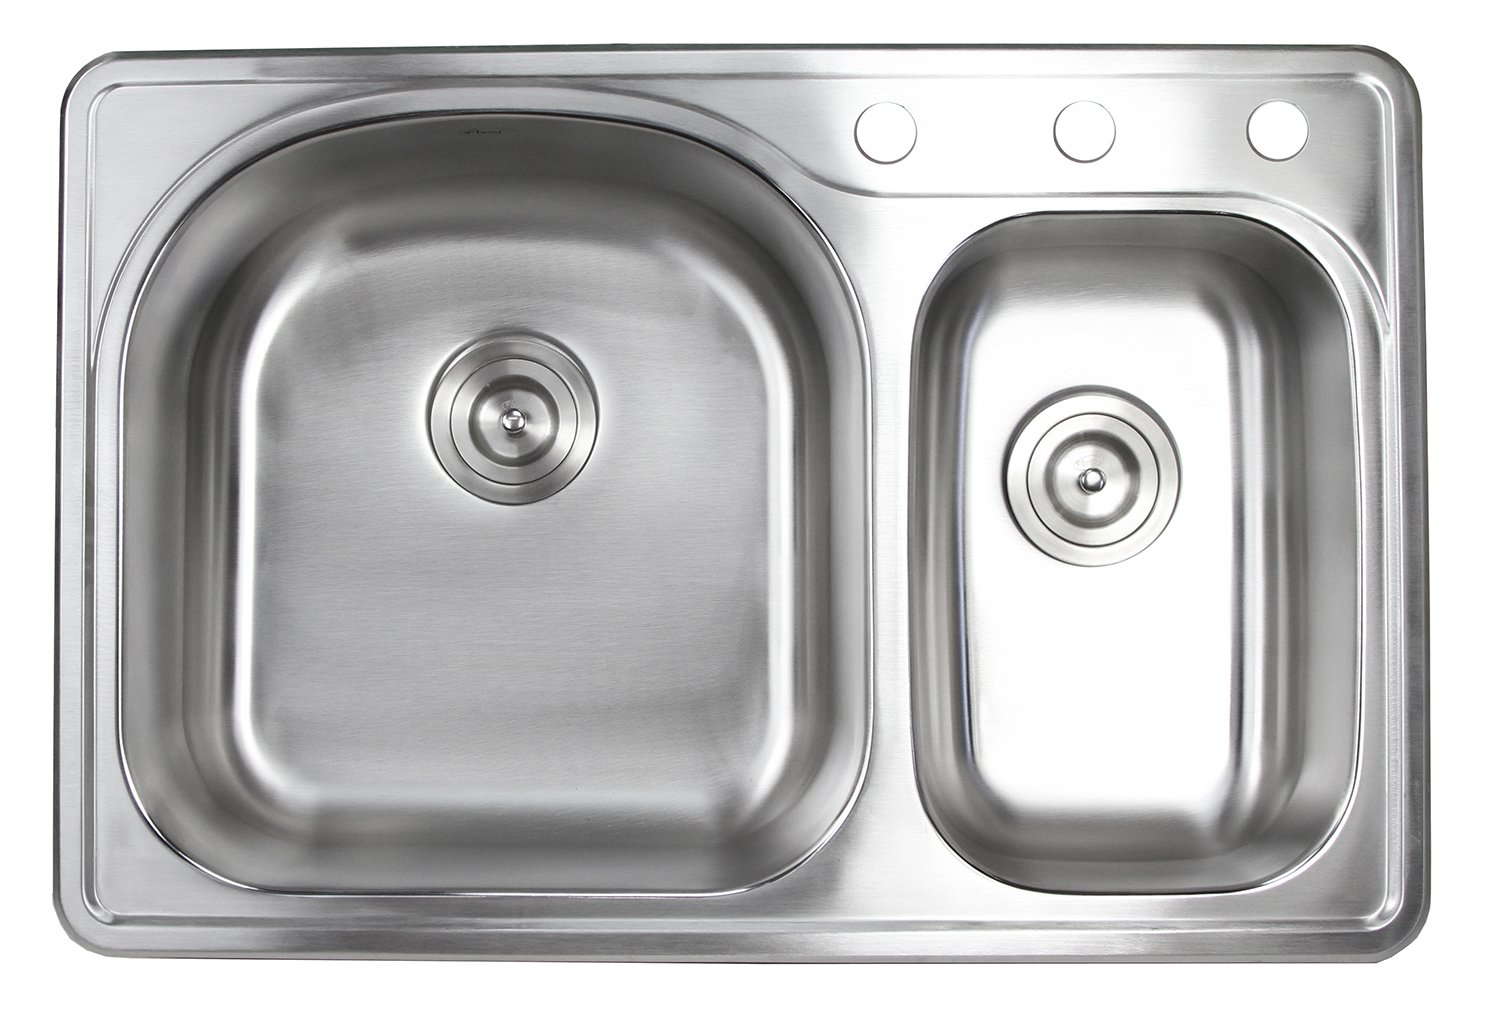 33 Inch Top-mount/Drop-in Stainless Steel 70/30 Double Bowl Kitchen Sink With 3 Faucet Holes - 18 Gauge by CBath